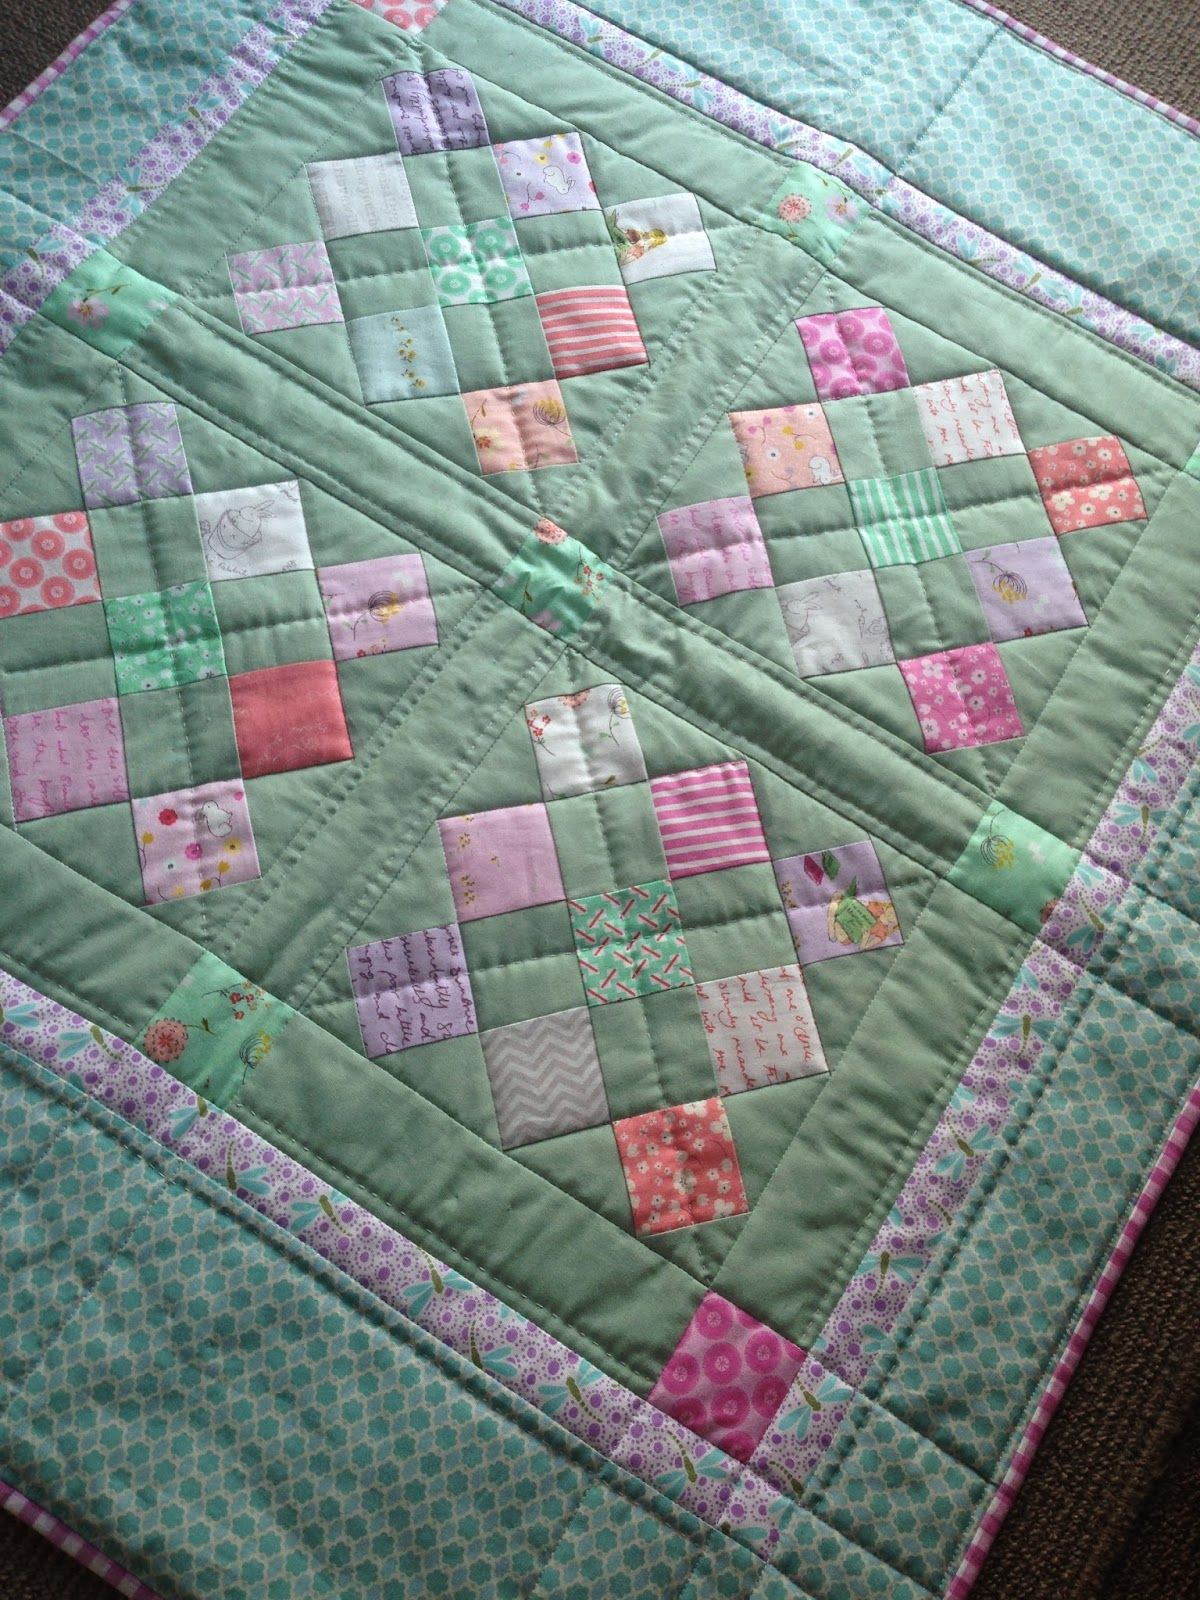 """Very pretty Posy Baby quilt by Susan Snooks from PatchworknPlay using a pattern by Sherri Lambert McConnell from AQuiltingLife.  """"I did some simple """"in the ditch"""" machine quilting first, then finished by hand quilting with #Aurifil wool thread!""""  To see more please visit http://patchworknplay.blogspot.com/2014/02/posy-baby.html"""